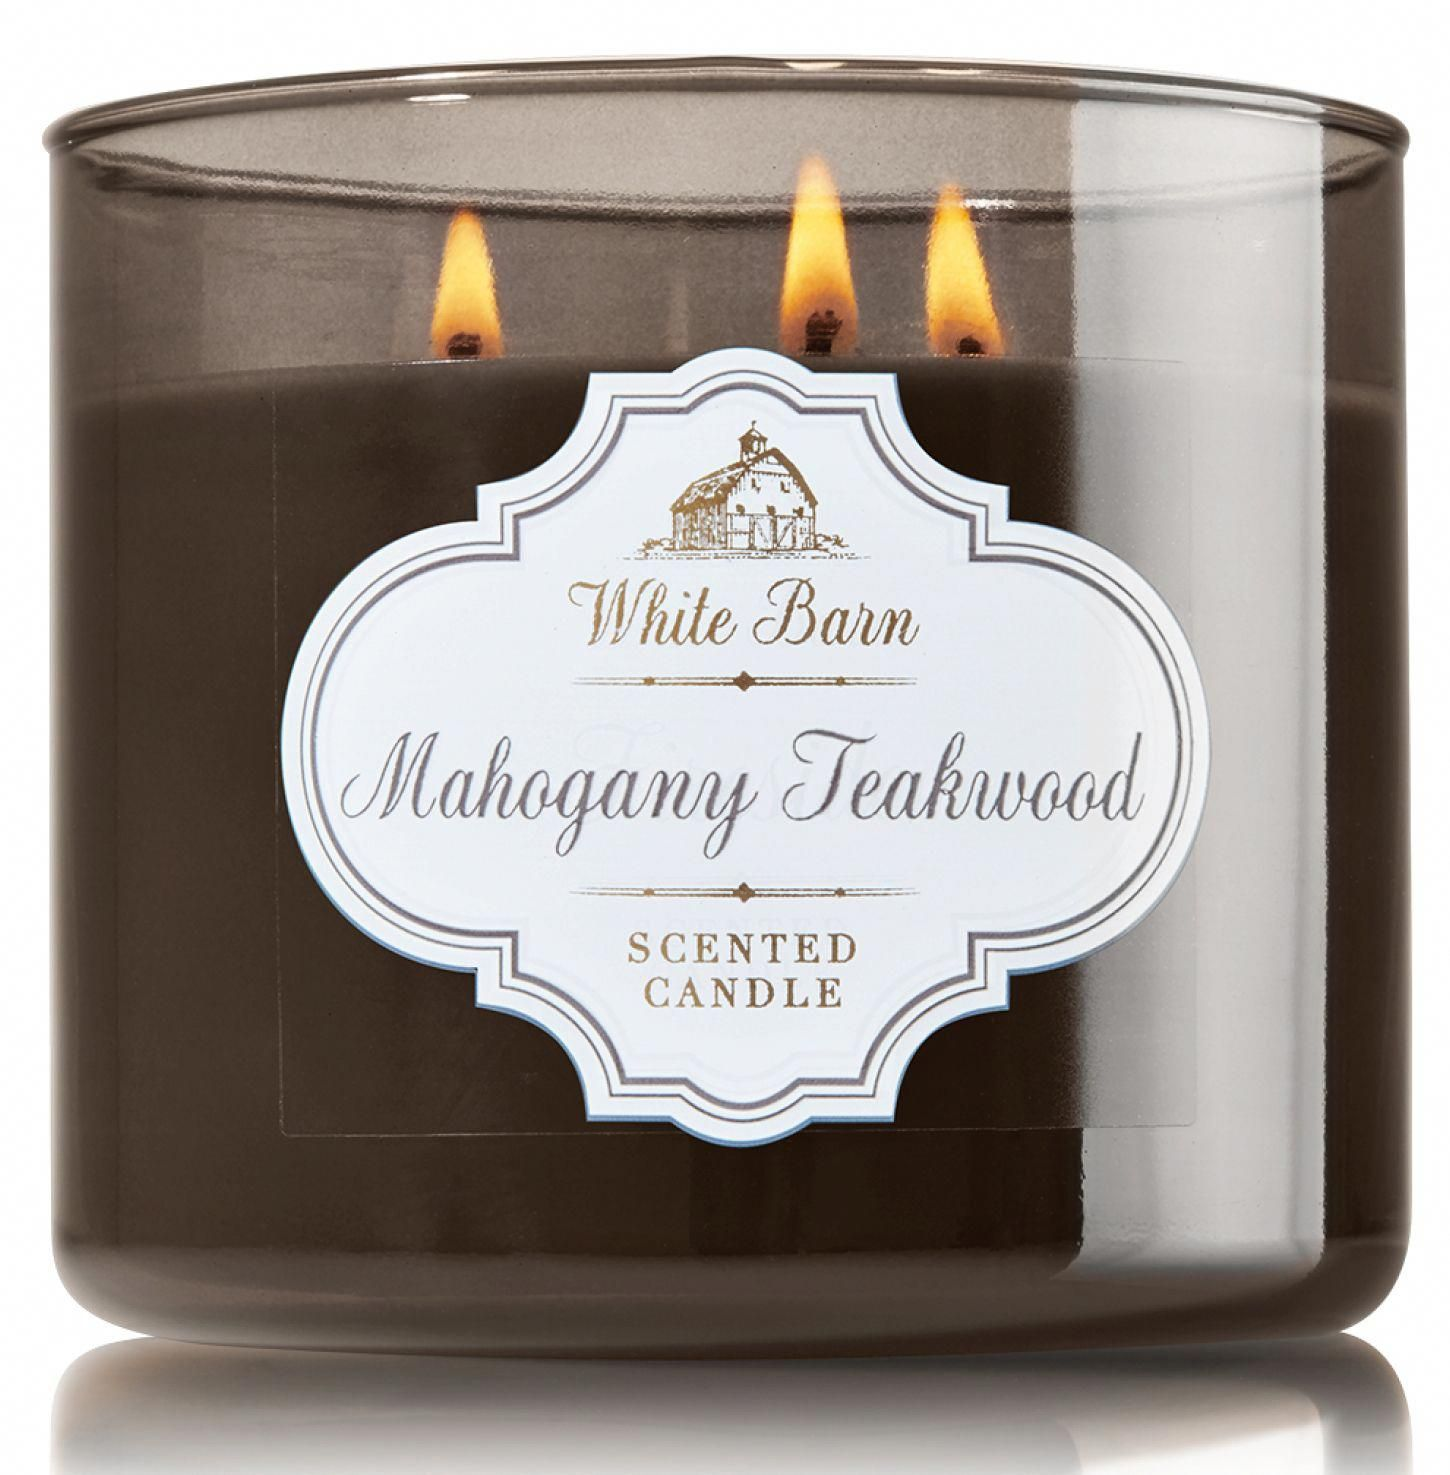 Ten Chic Candles Worth Burning glamourcandle Candles